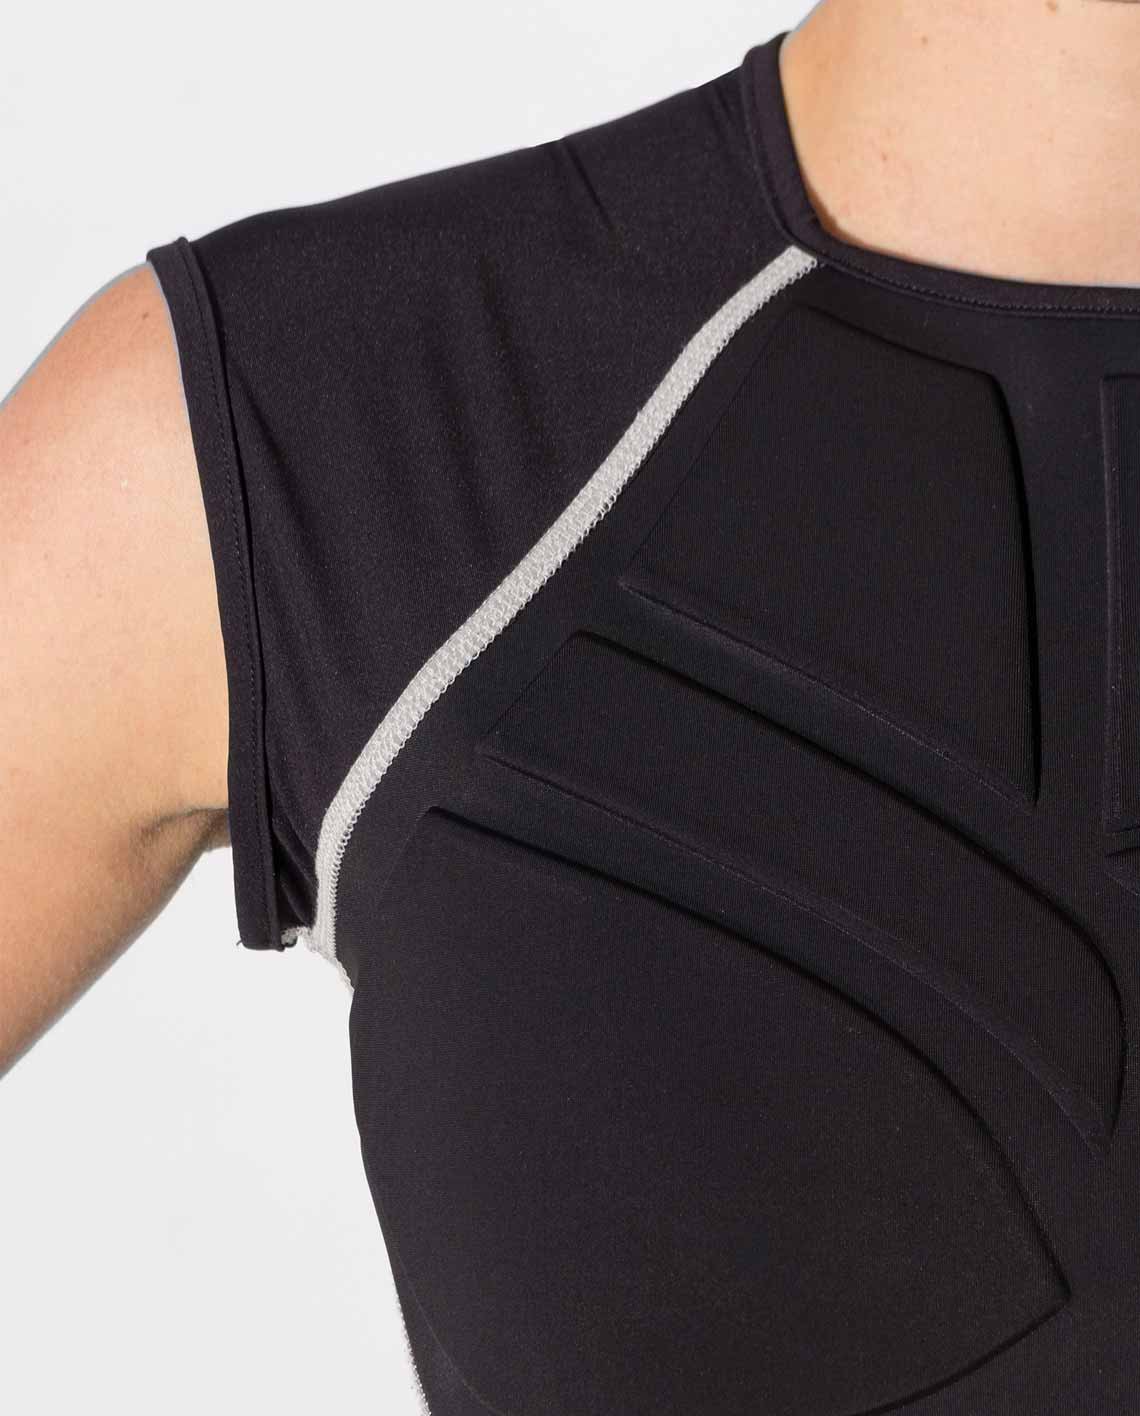 soft bust padding for martial arts